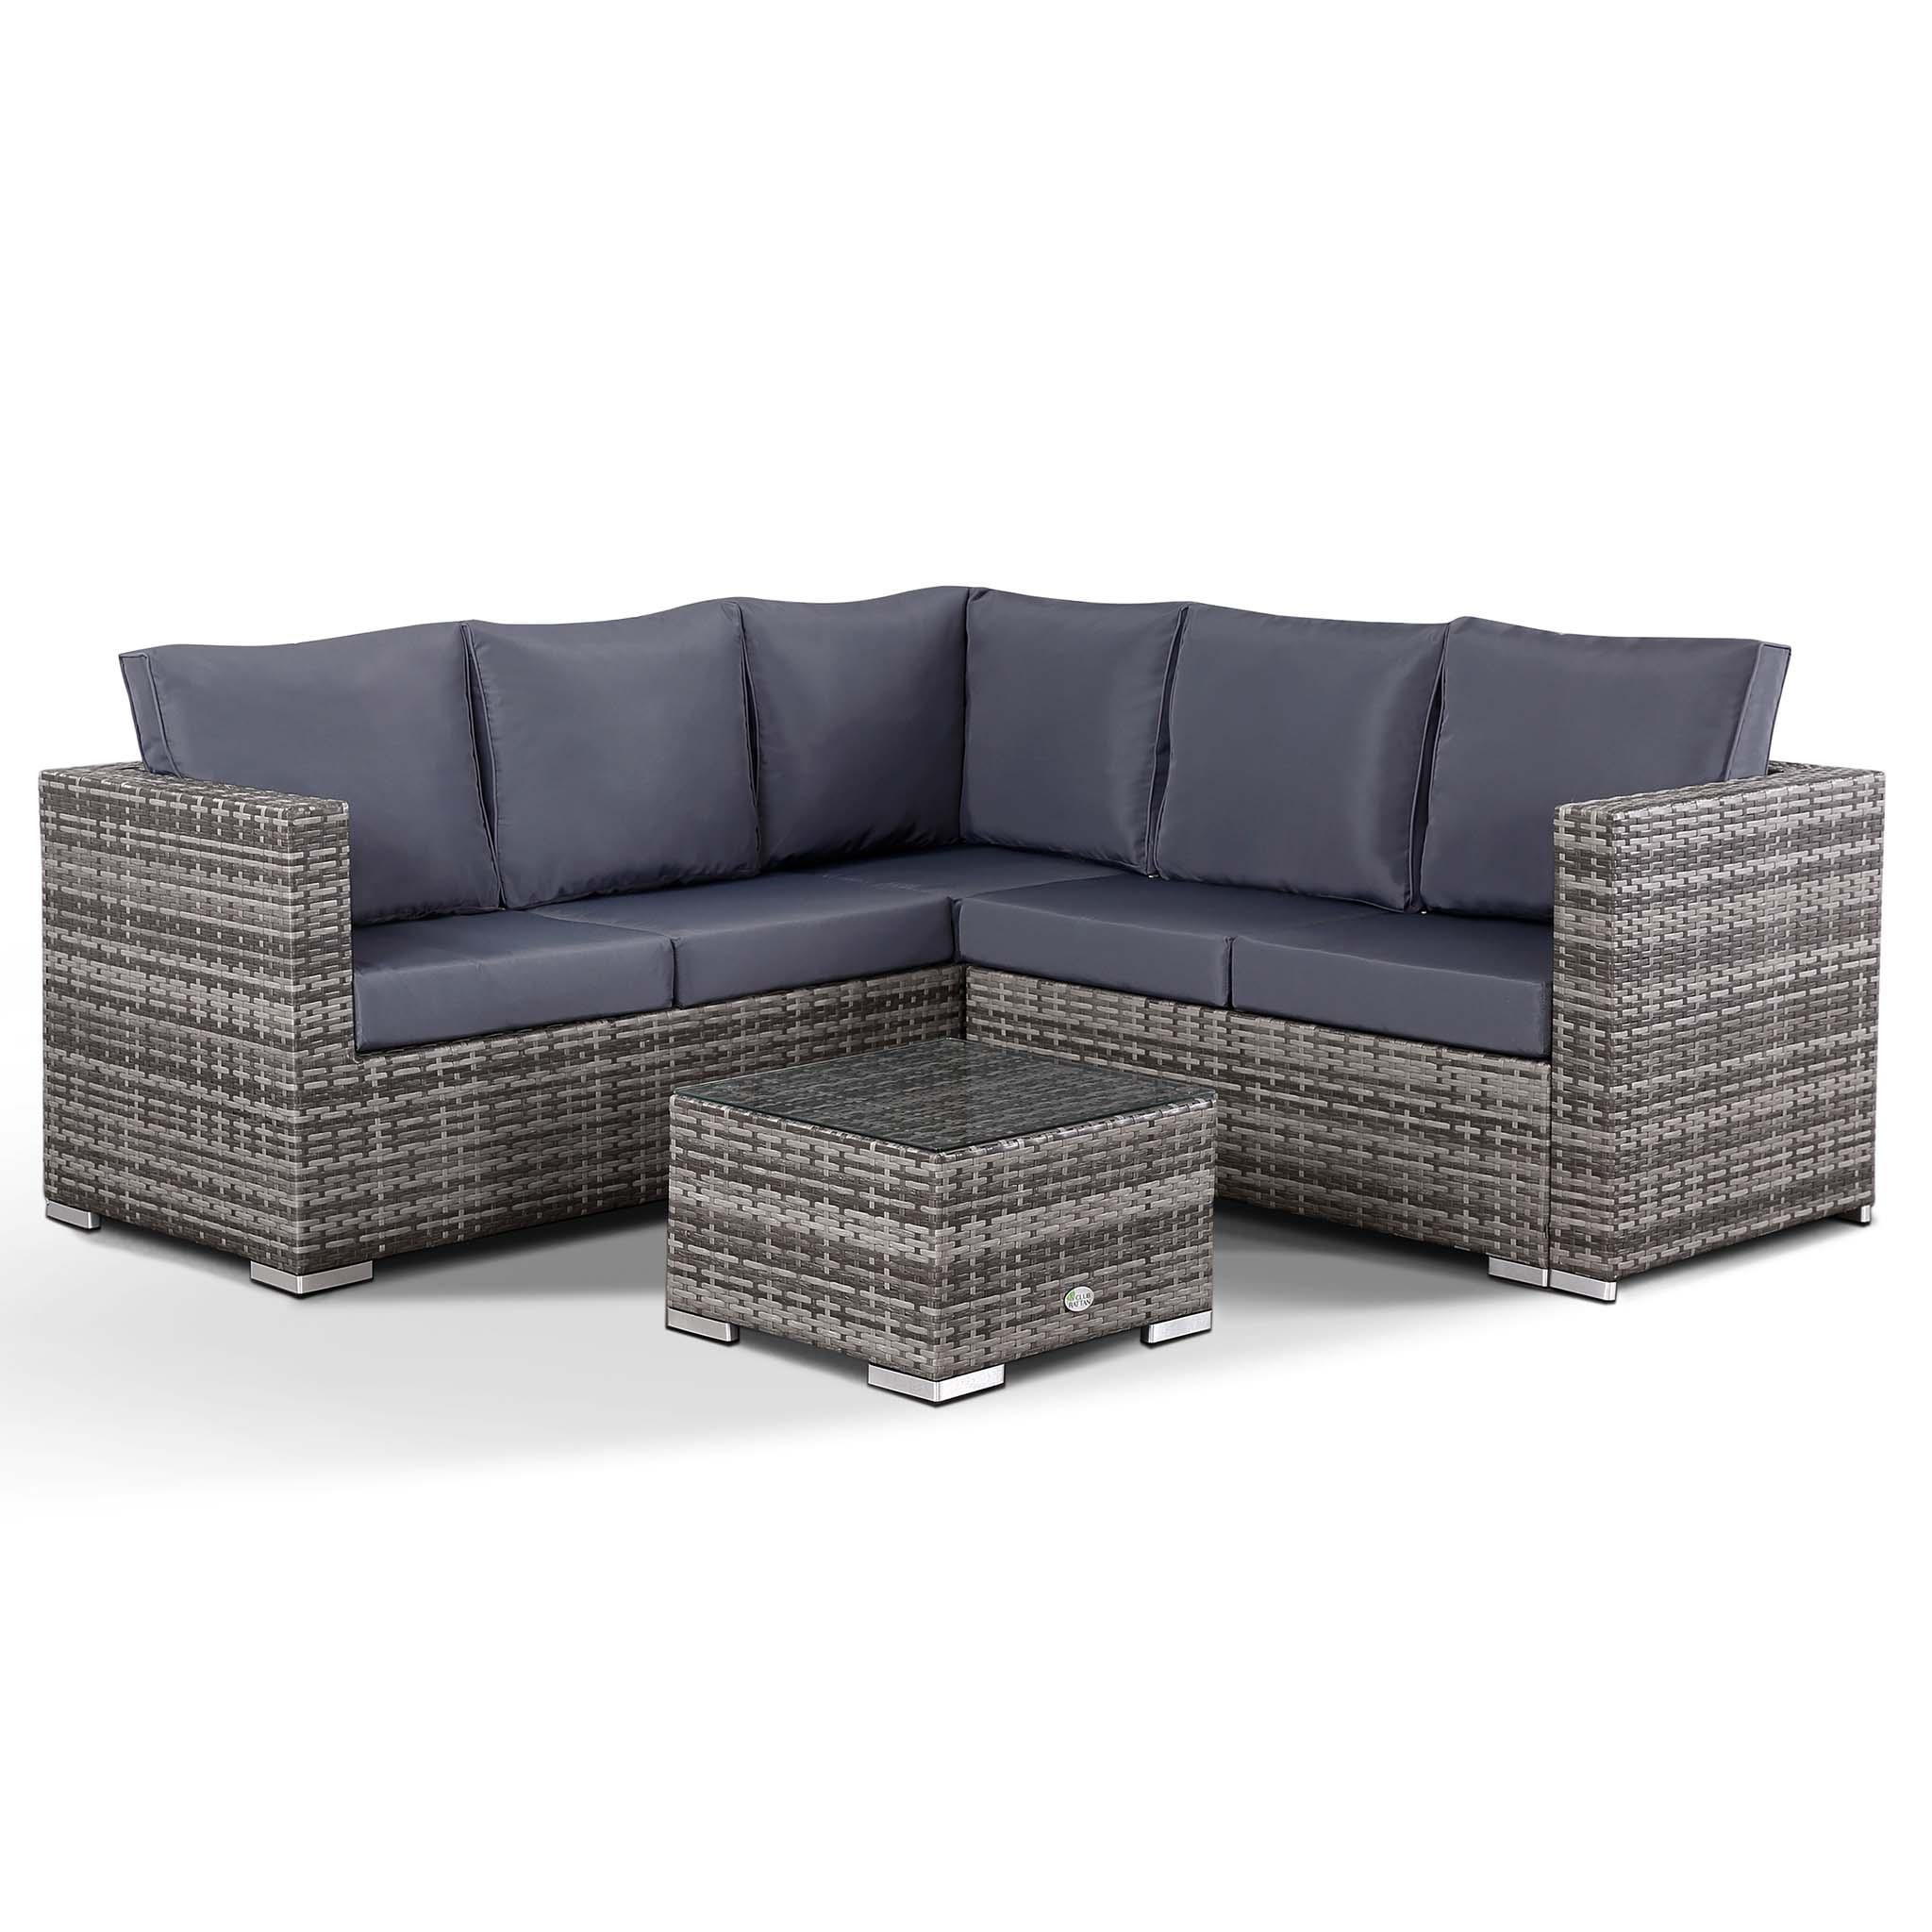 Small Grey Rattan Coffee Table: Lille Corner Sofa With Coffee Table In Small Grey Rattan